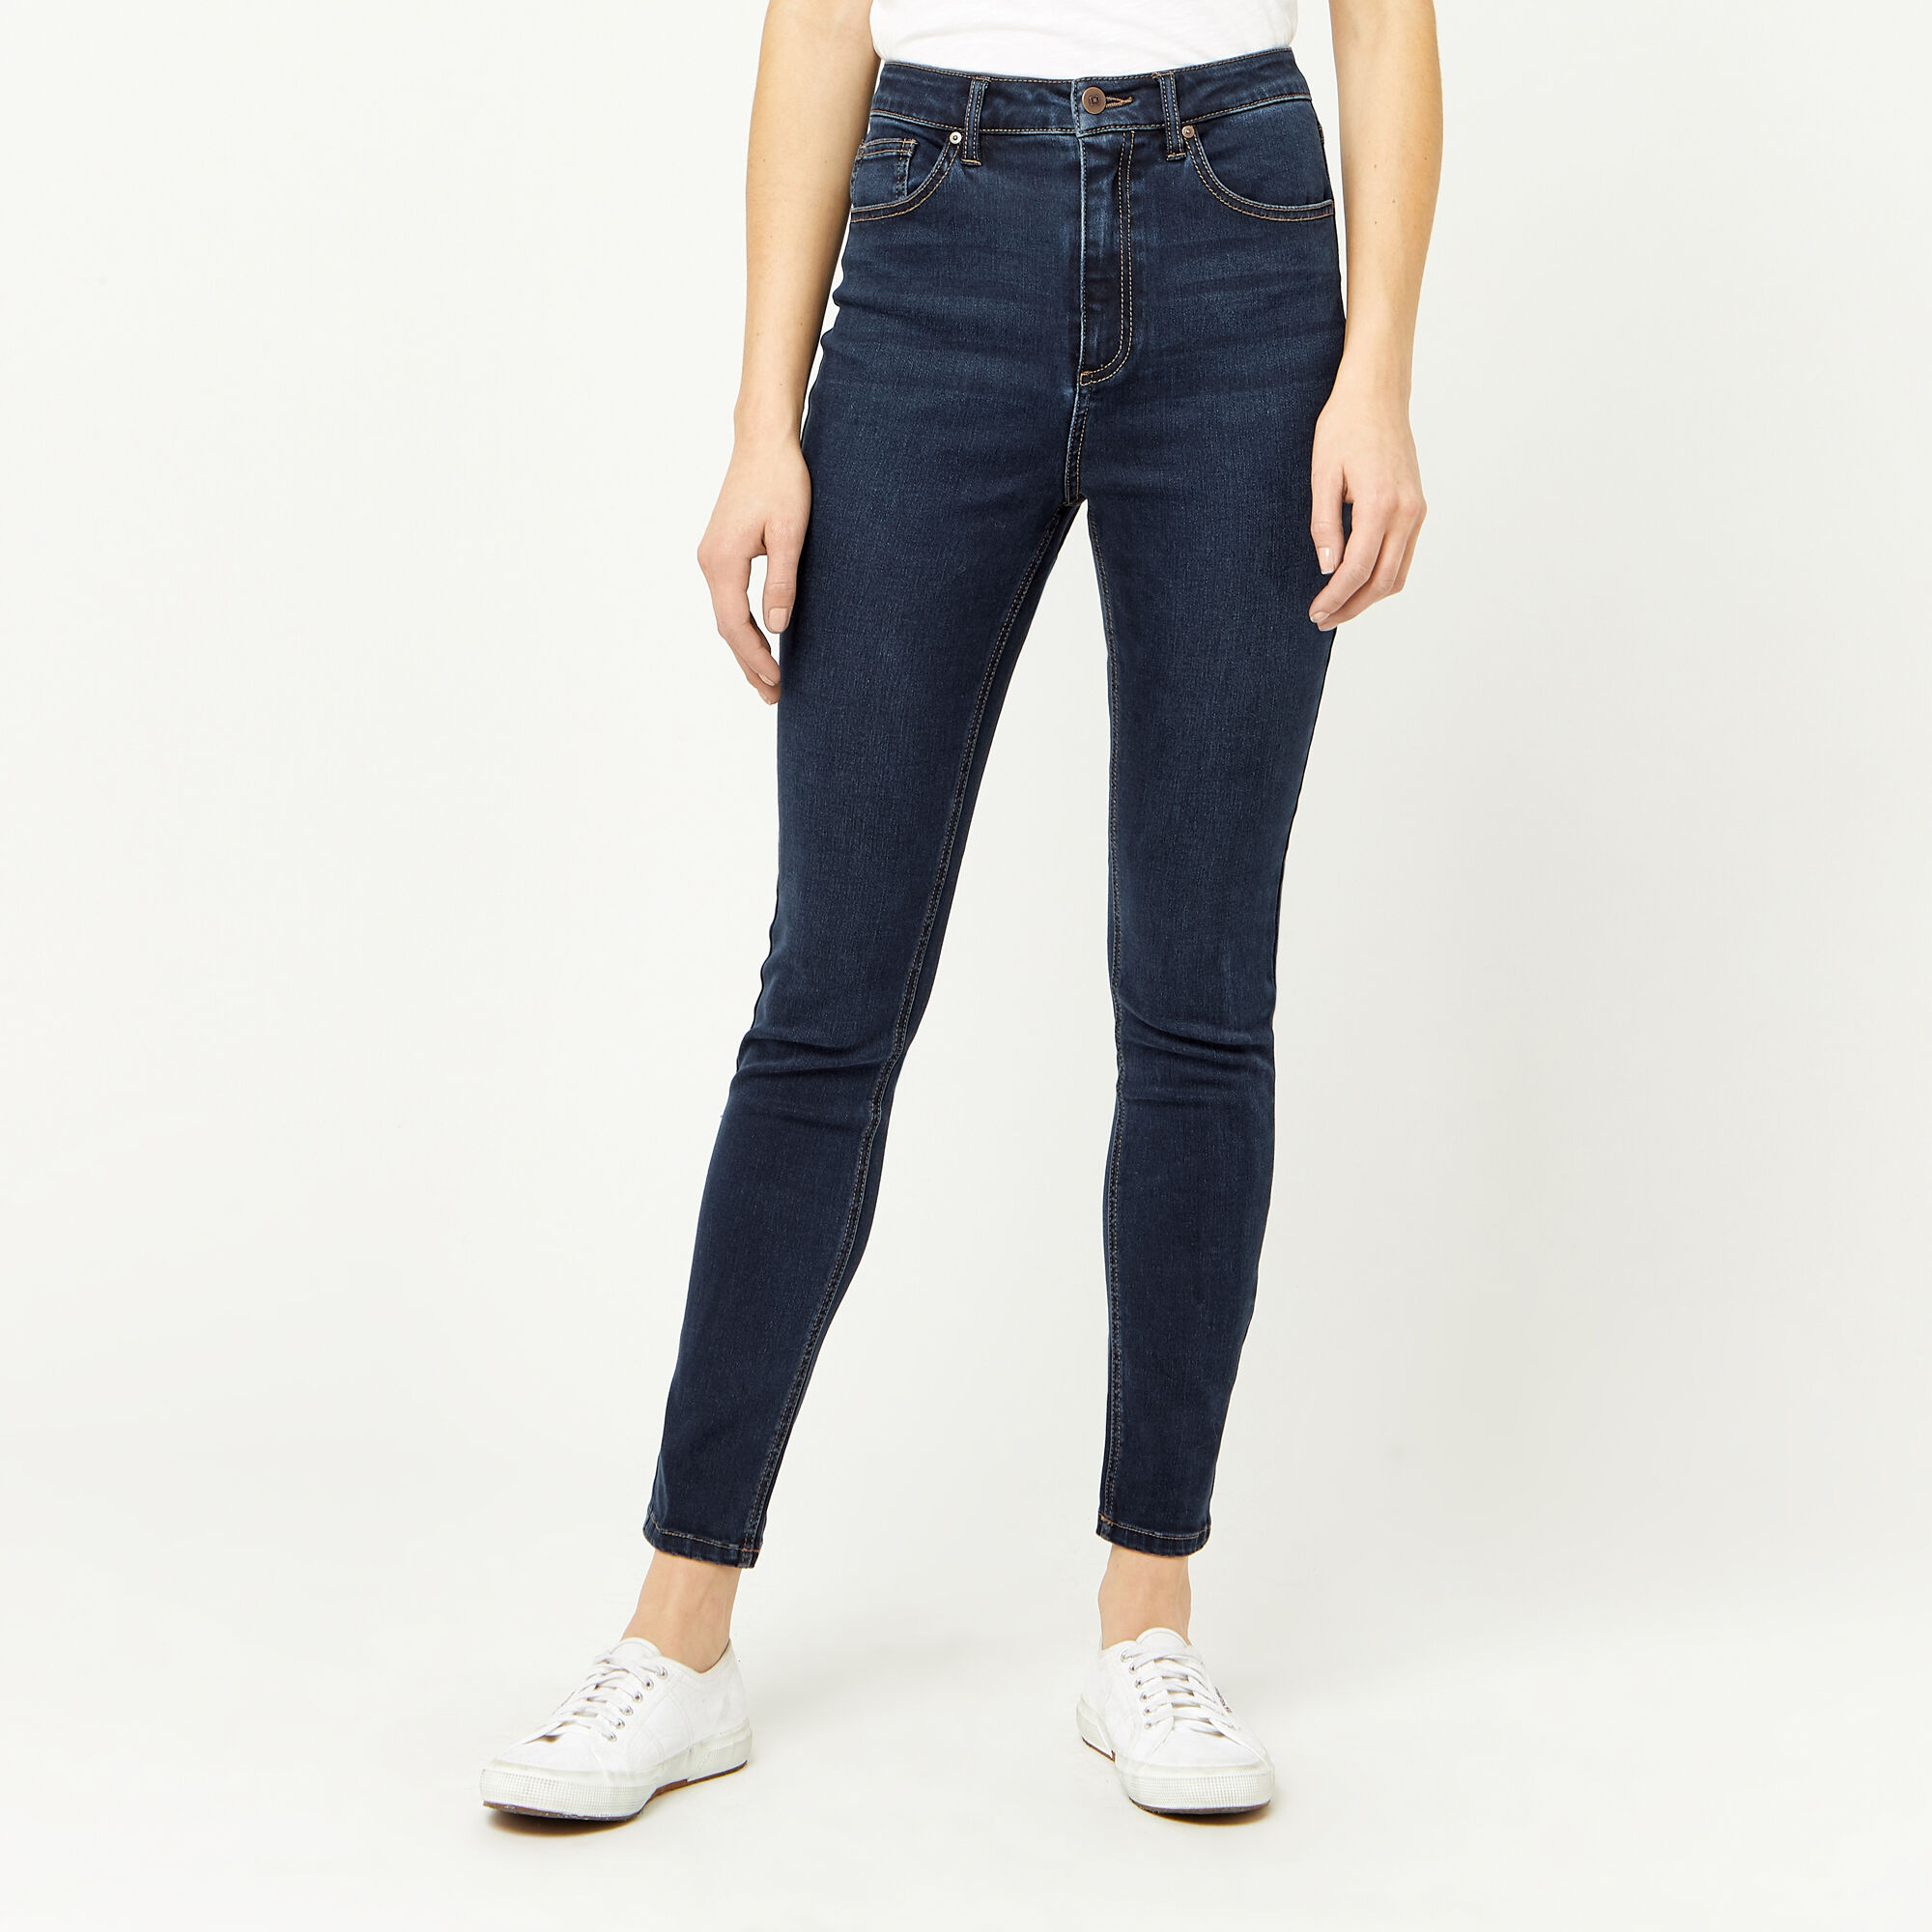 POWERHOLD HIGH RISE SKINNY CUT JEANS | Warehouse